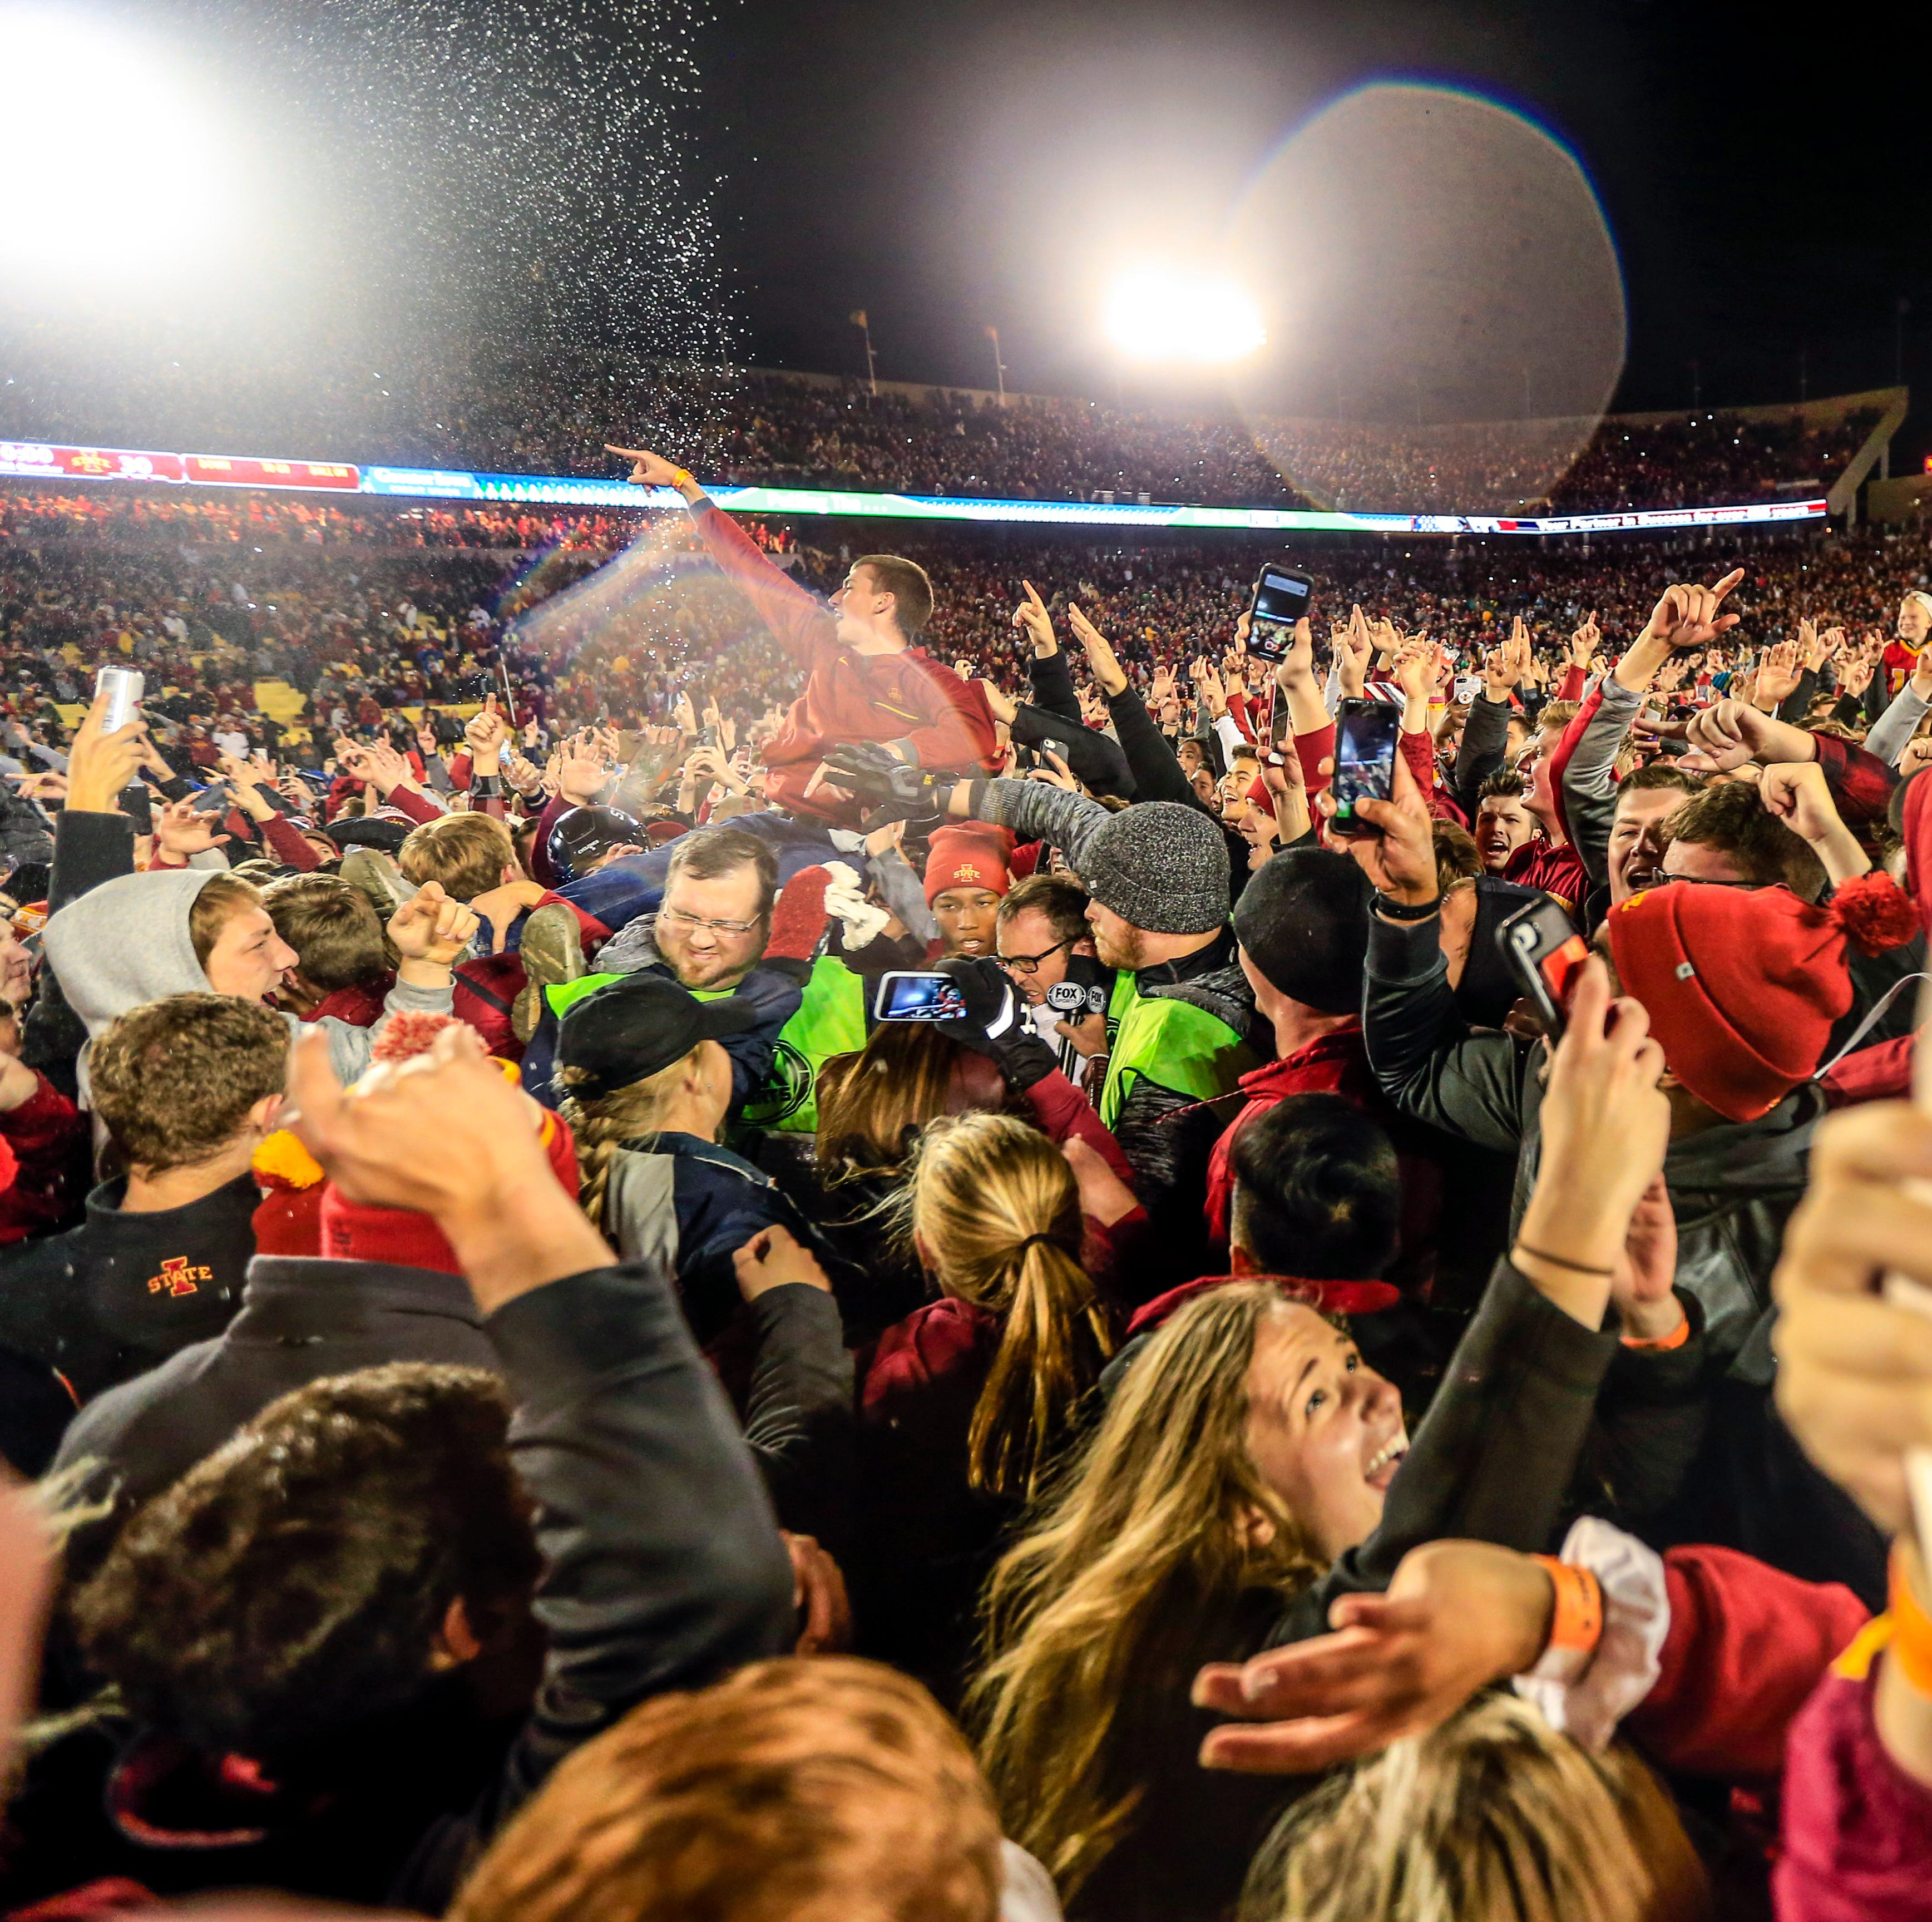 Iowa State loses appeal for field storming; $25,000 fine upheld by the Big 12